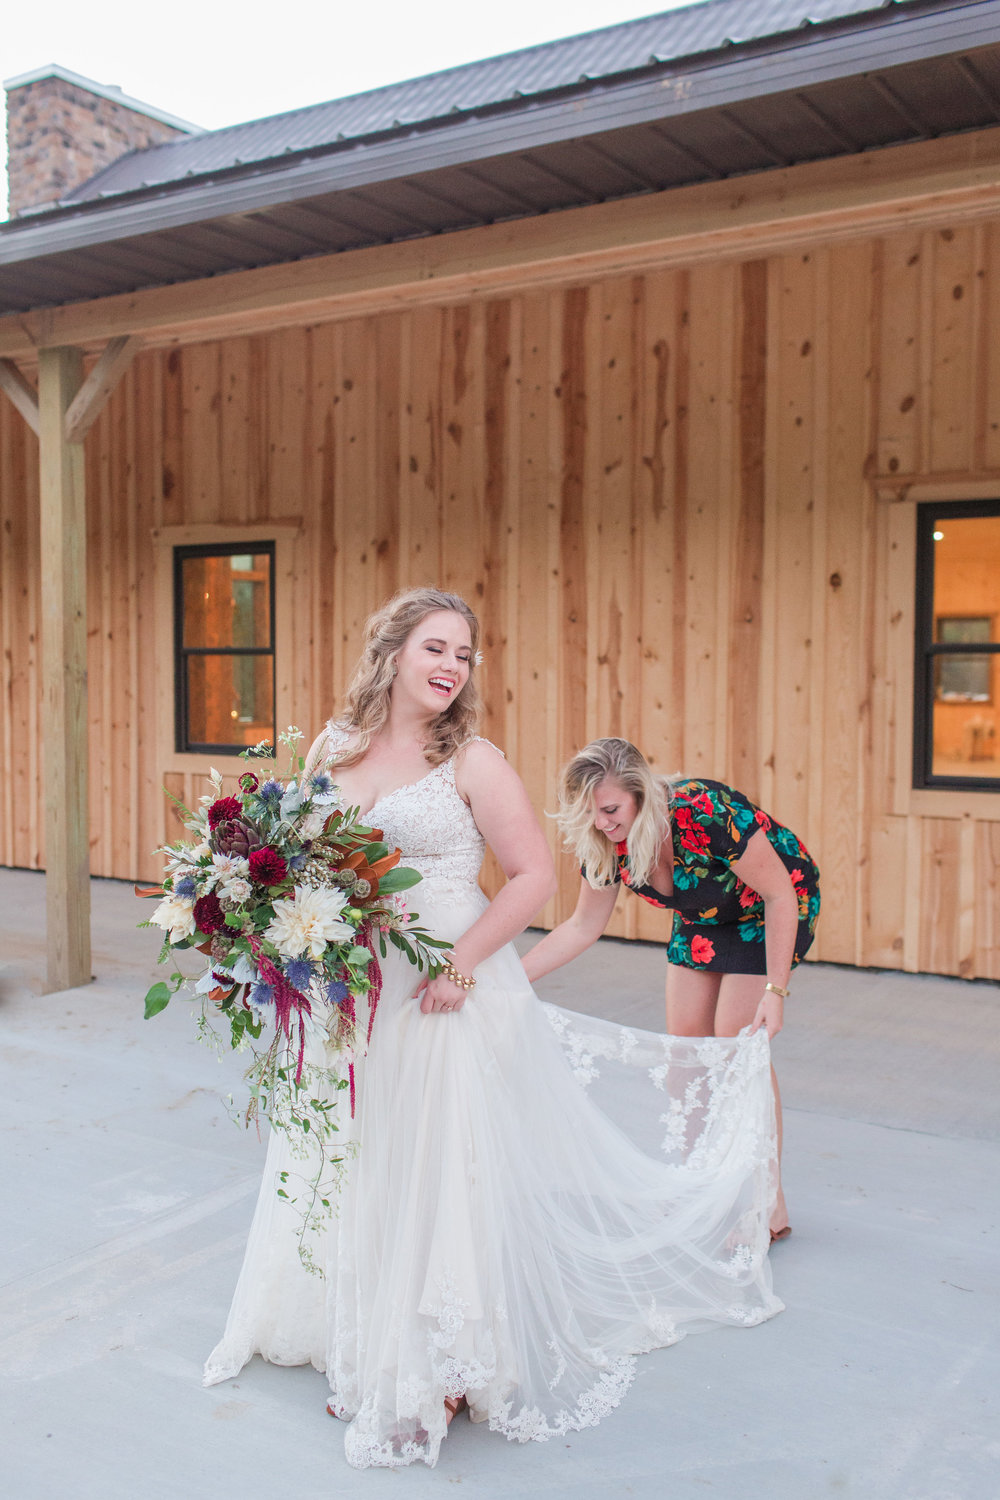 country-lane-lodge-adel-iowa-wedding-venue-white-lace-dress-purple-red-lush-bouquet-planned-by-mostly-becky-weddings-ceremony-lodge-wedding-chandelier-cowhide-sweetheart-table-barn-table-lodge-wedding-mostly-becky-wedding-planner